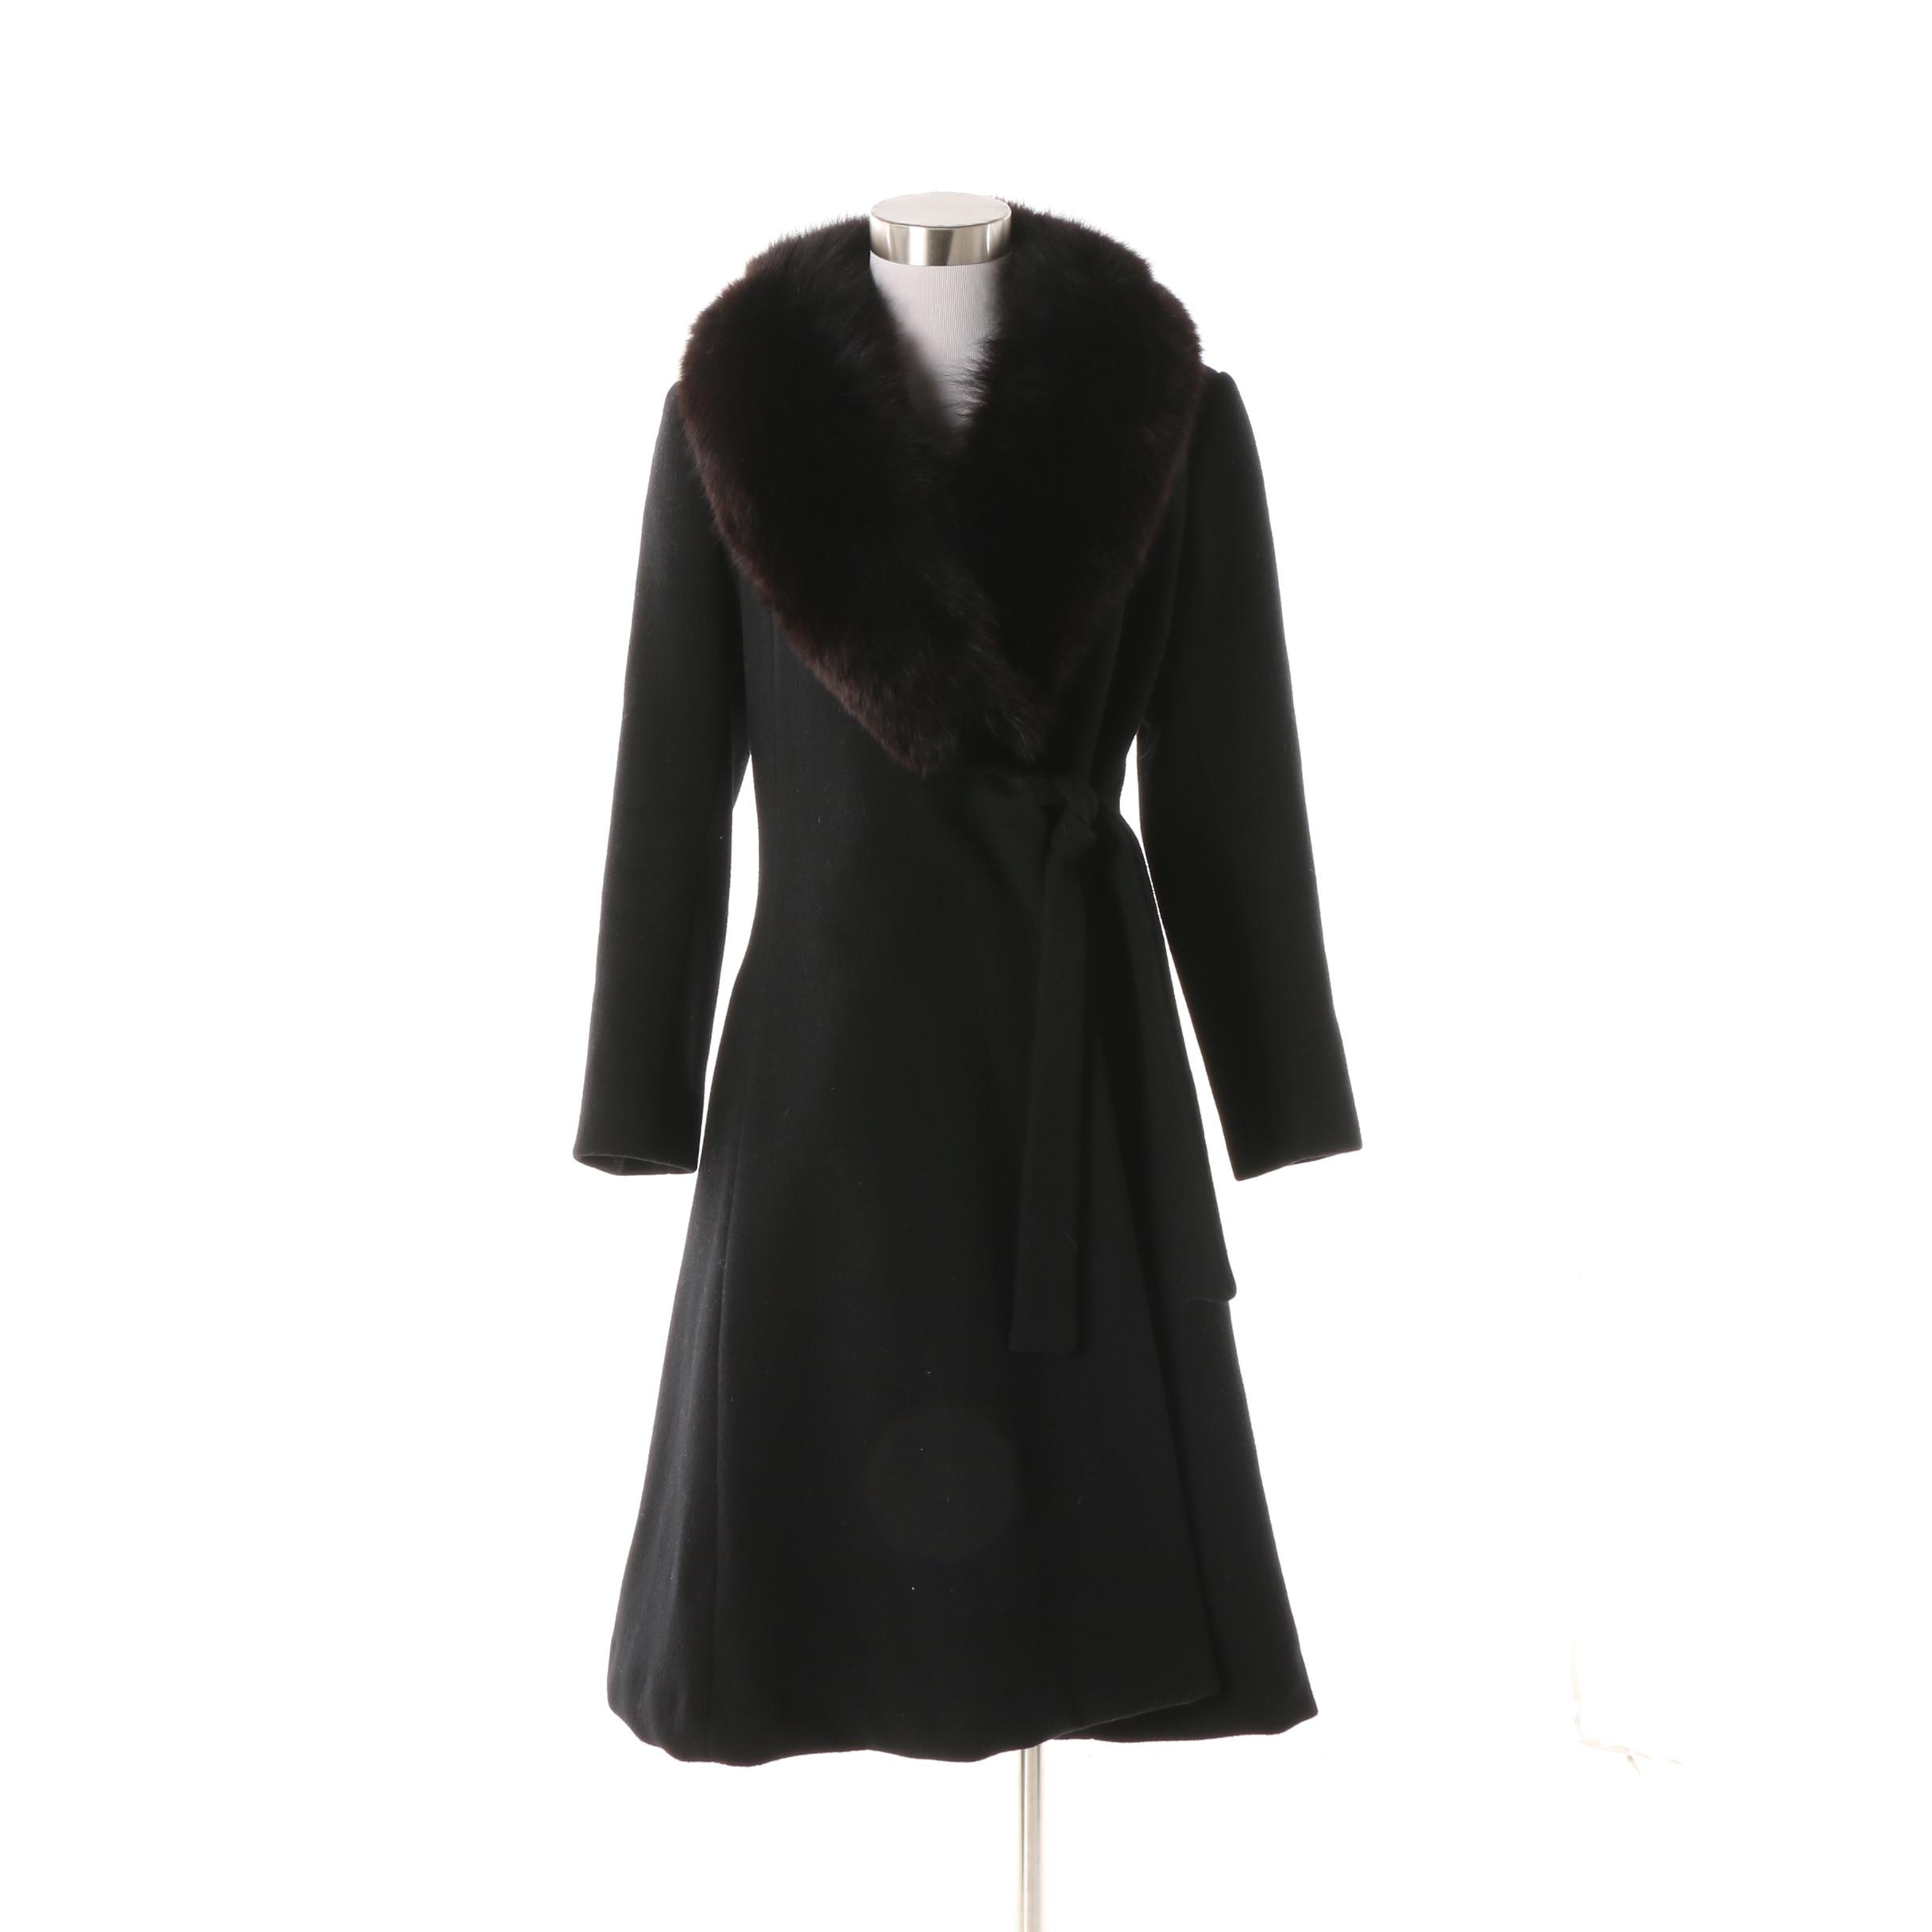 Women's Vintage Fairbrooke Black Wool Princess Coat with Black Fox Fur Collar